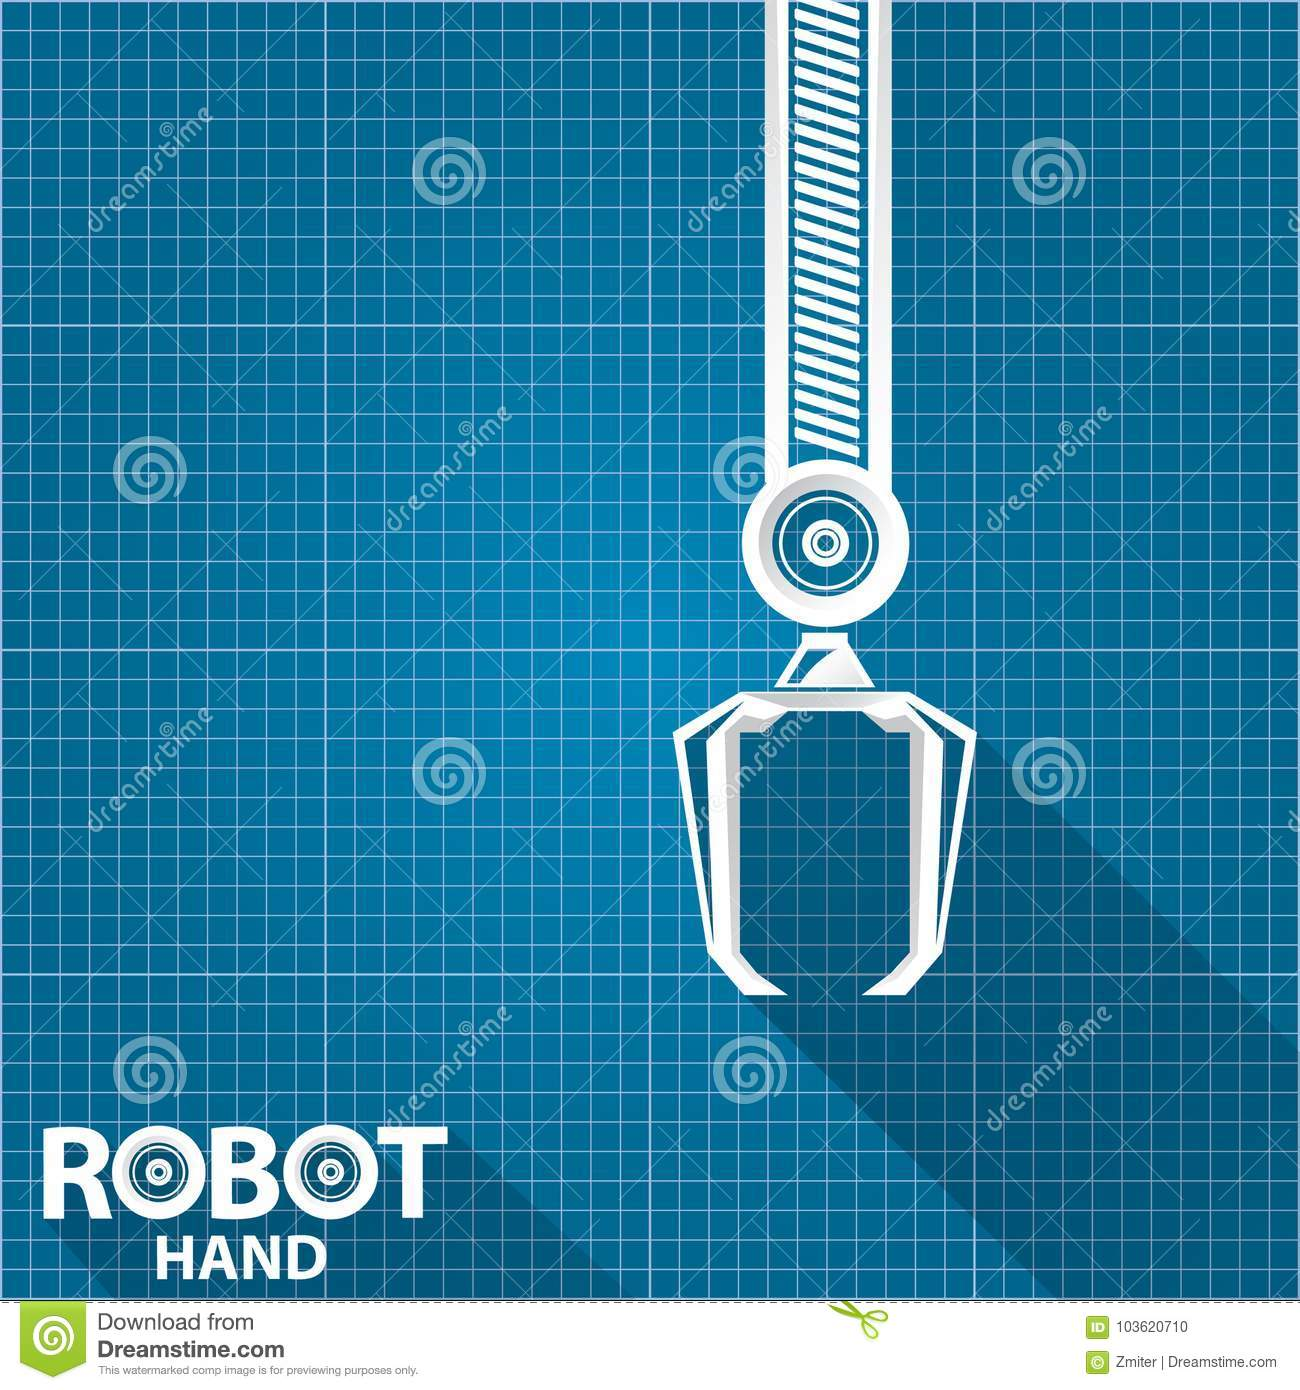 Vector robotic arm symbol on blueprint paper background robot hand vector robotic arm symbol on blueprint paper background robot hand technology background design engineering hydraulic malvernweather Choice Image